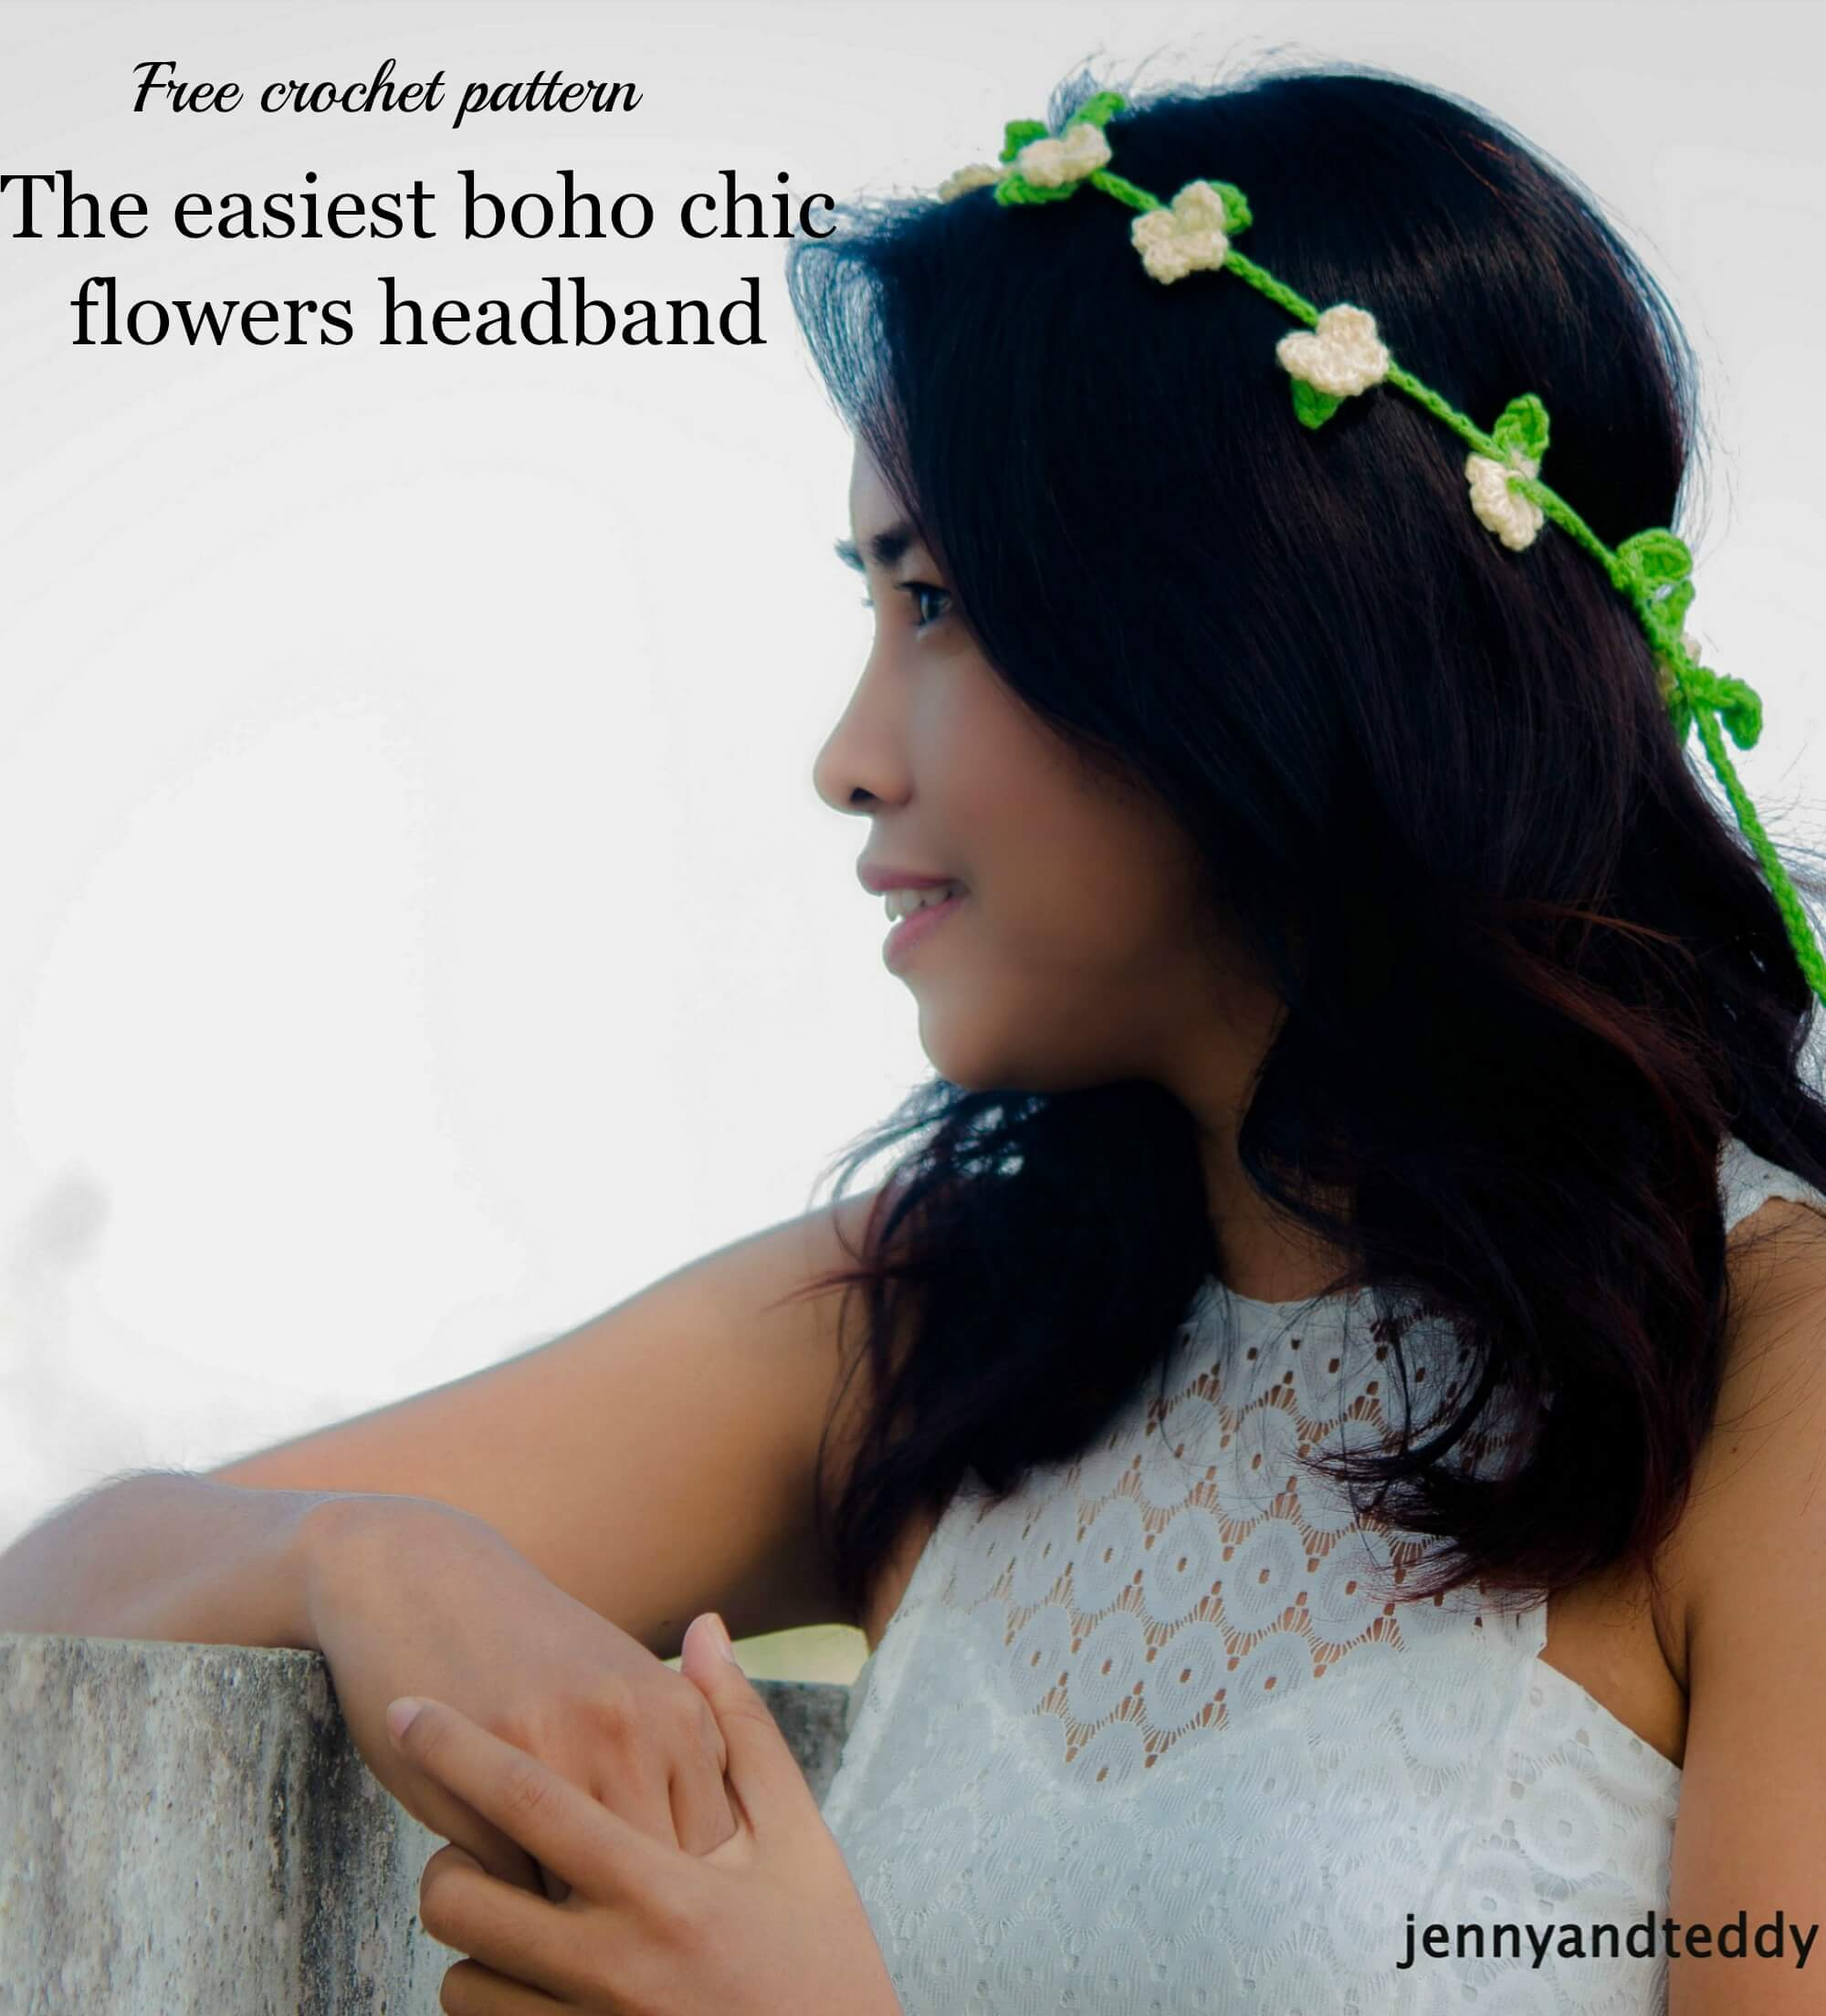 Boho Chic Flowers Headband free crochet pattern